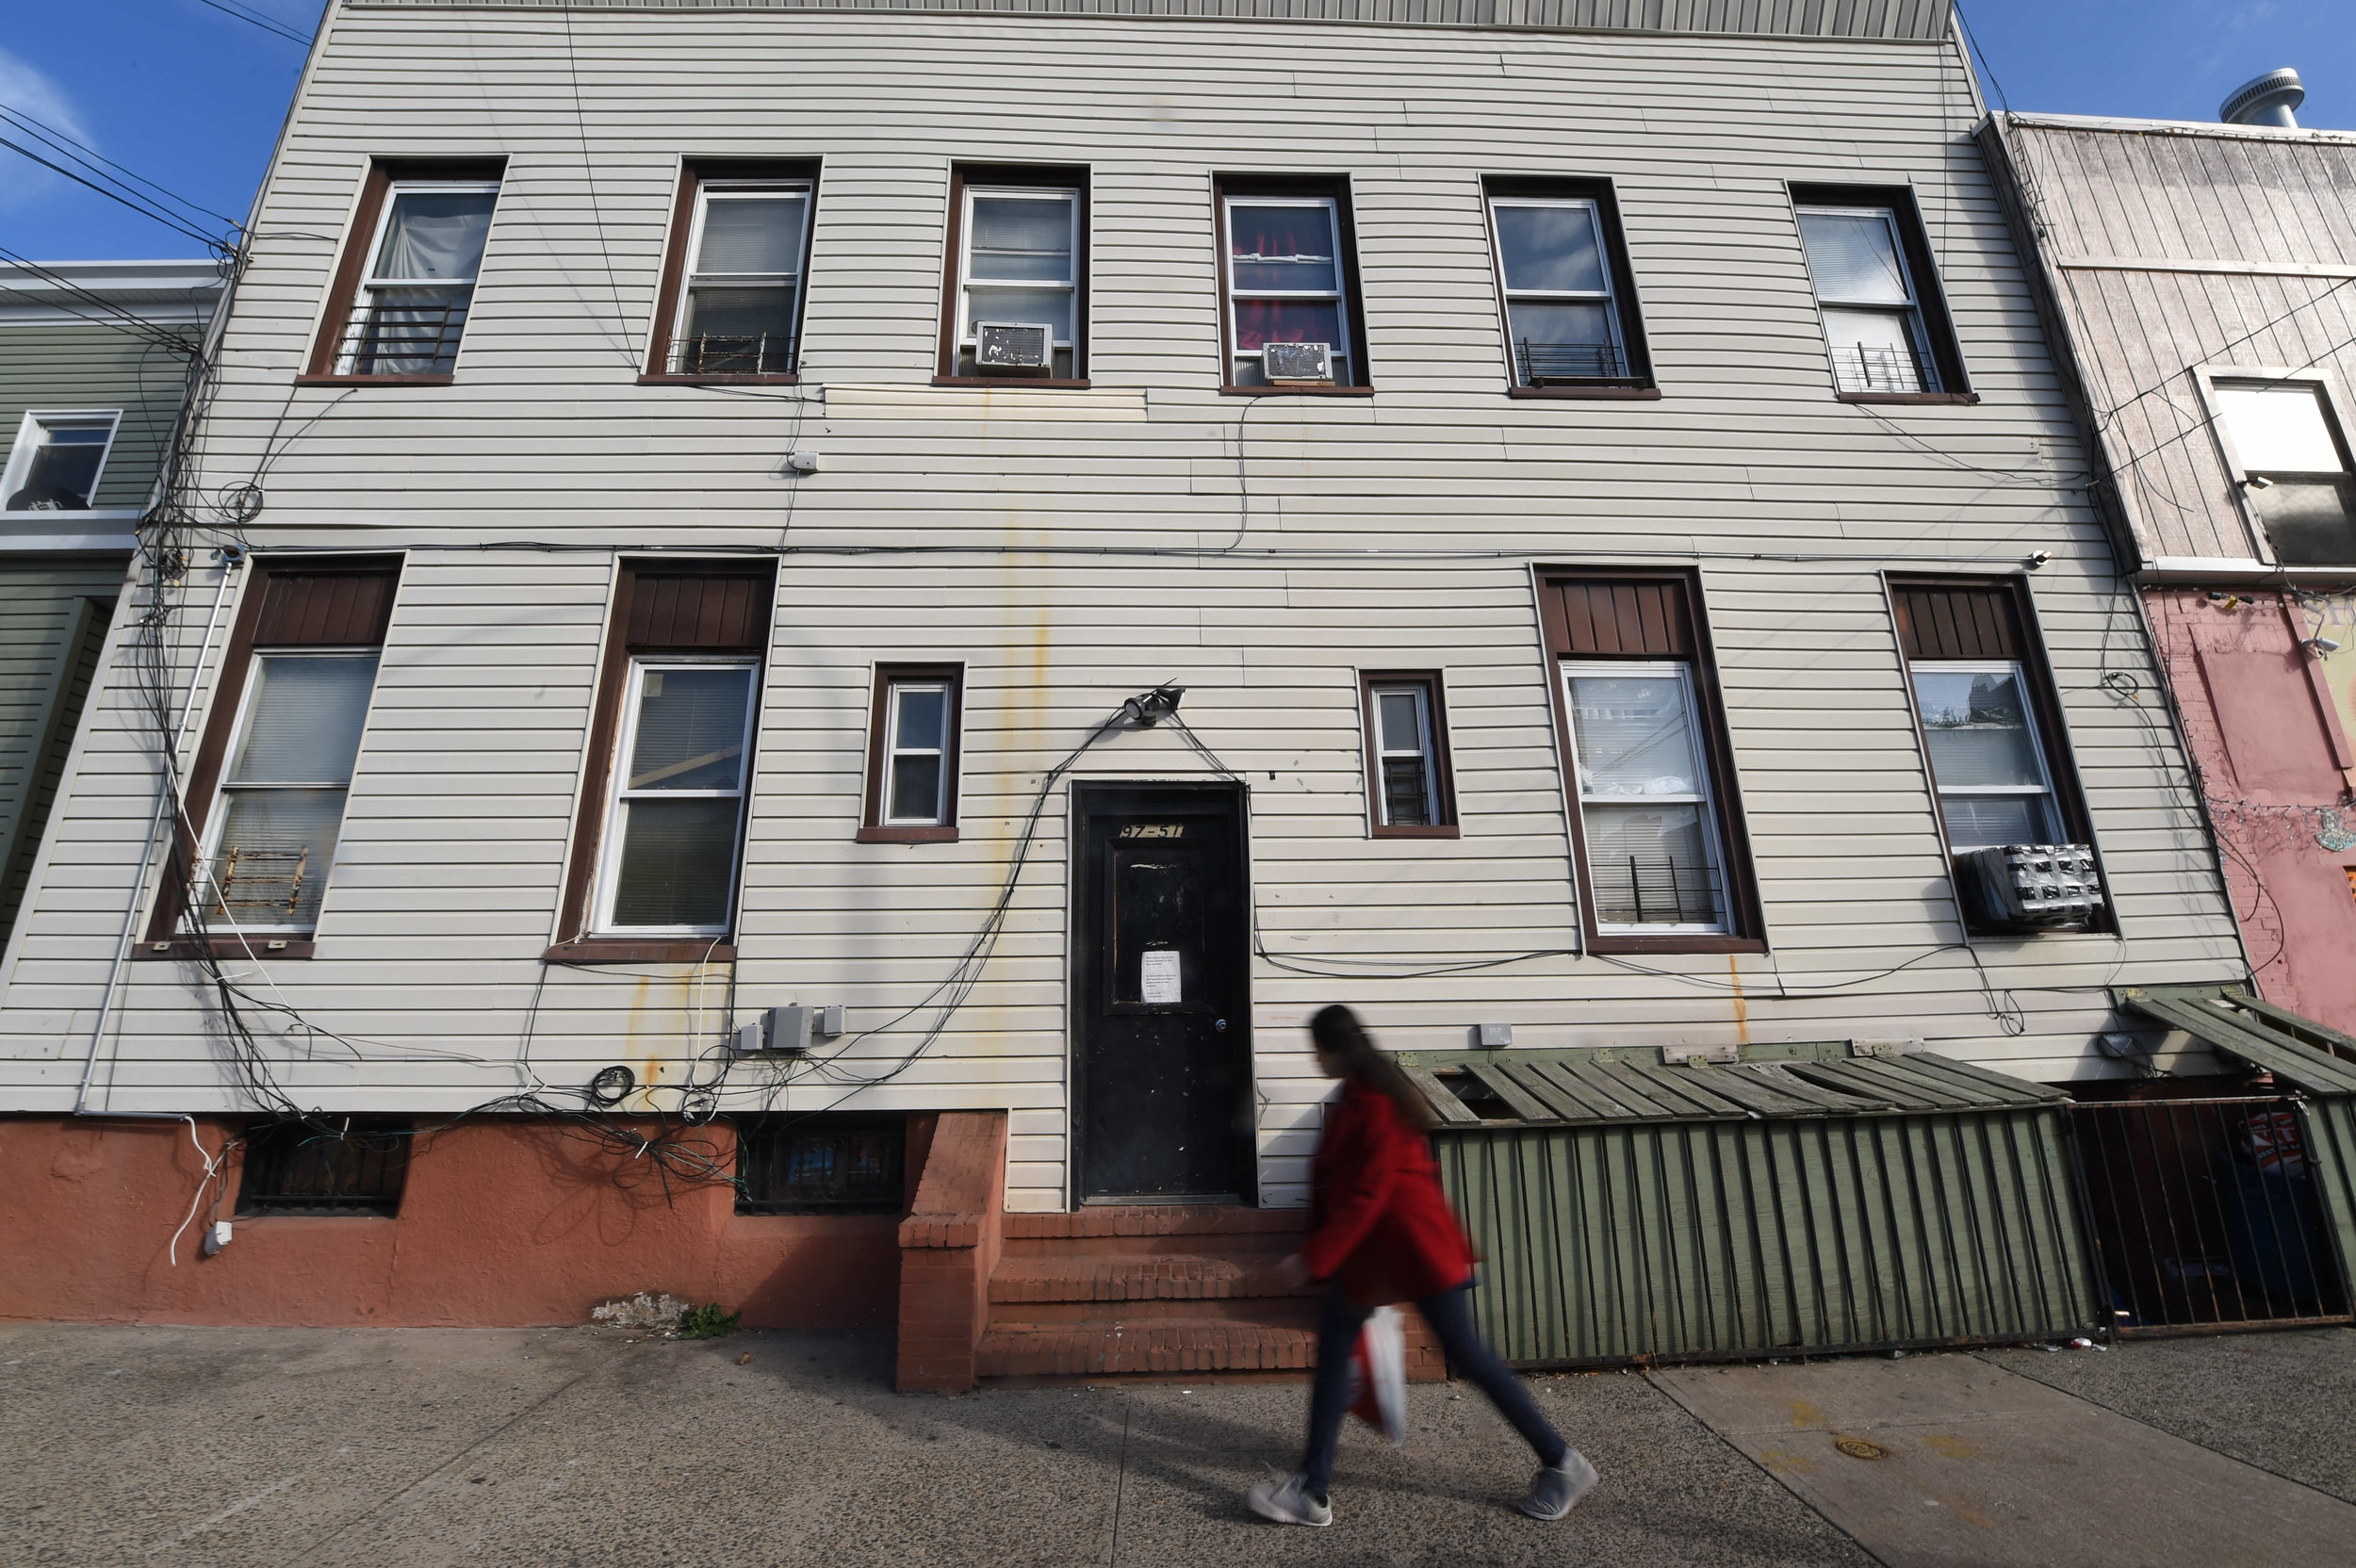 The building at 97-51 104th Street in Ozone Park is managed by Isaac Azoulay, ranked number 64 on Public Advocate Letitia James' 2018 Worst Landlords List.  Eagle  photo by Todd Maisel